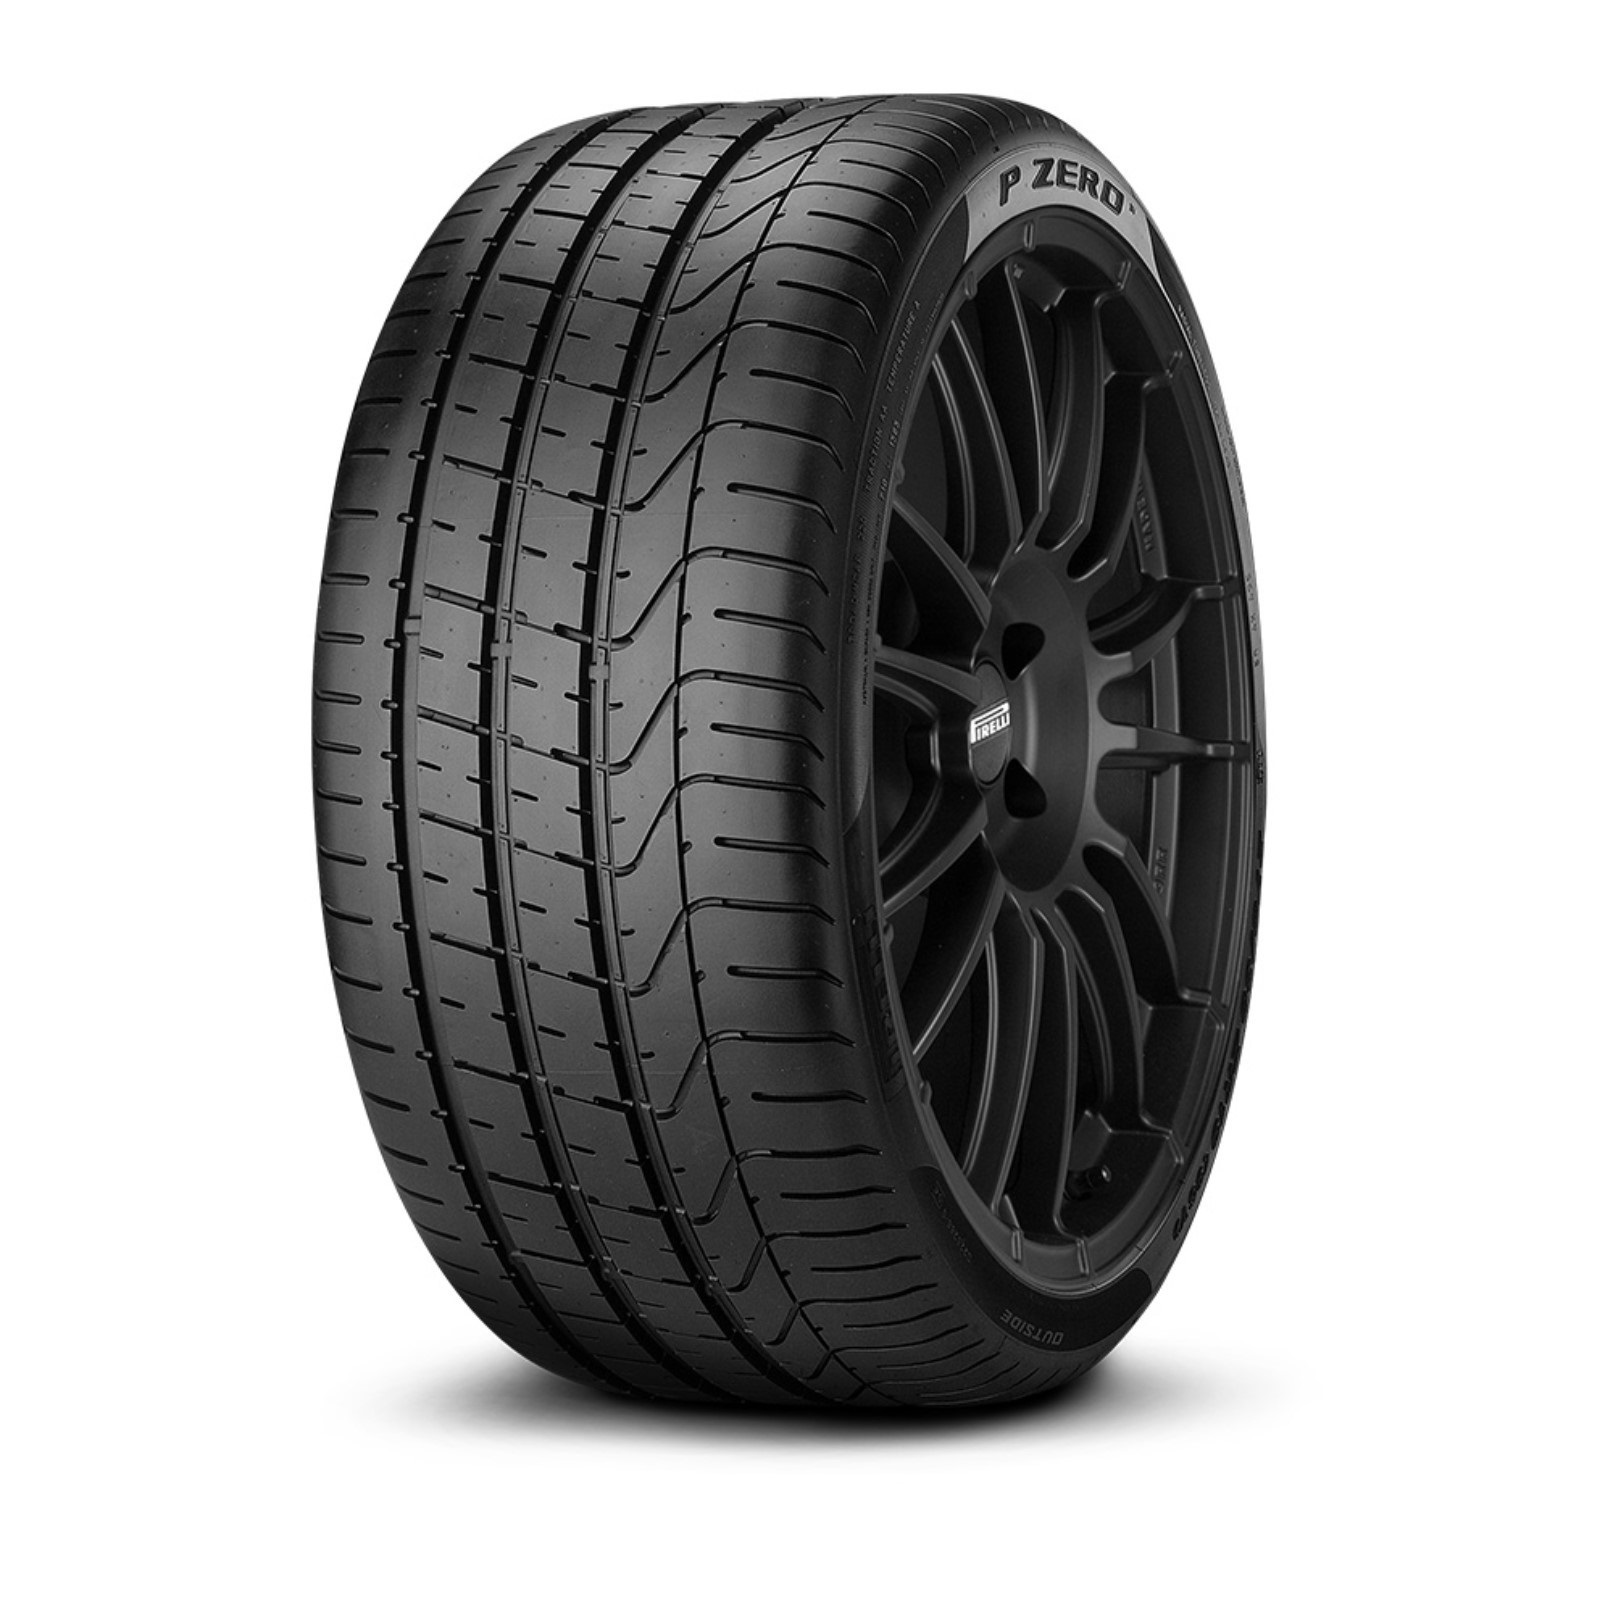 275/45 R20 Pirelli P-Zero Luxury Saloon 110Y Run Flat XL *